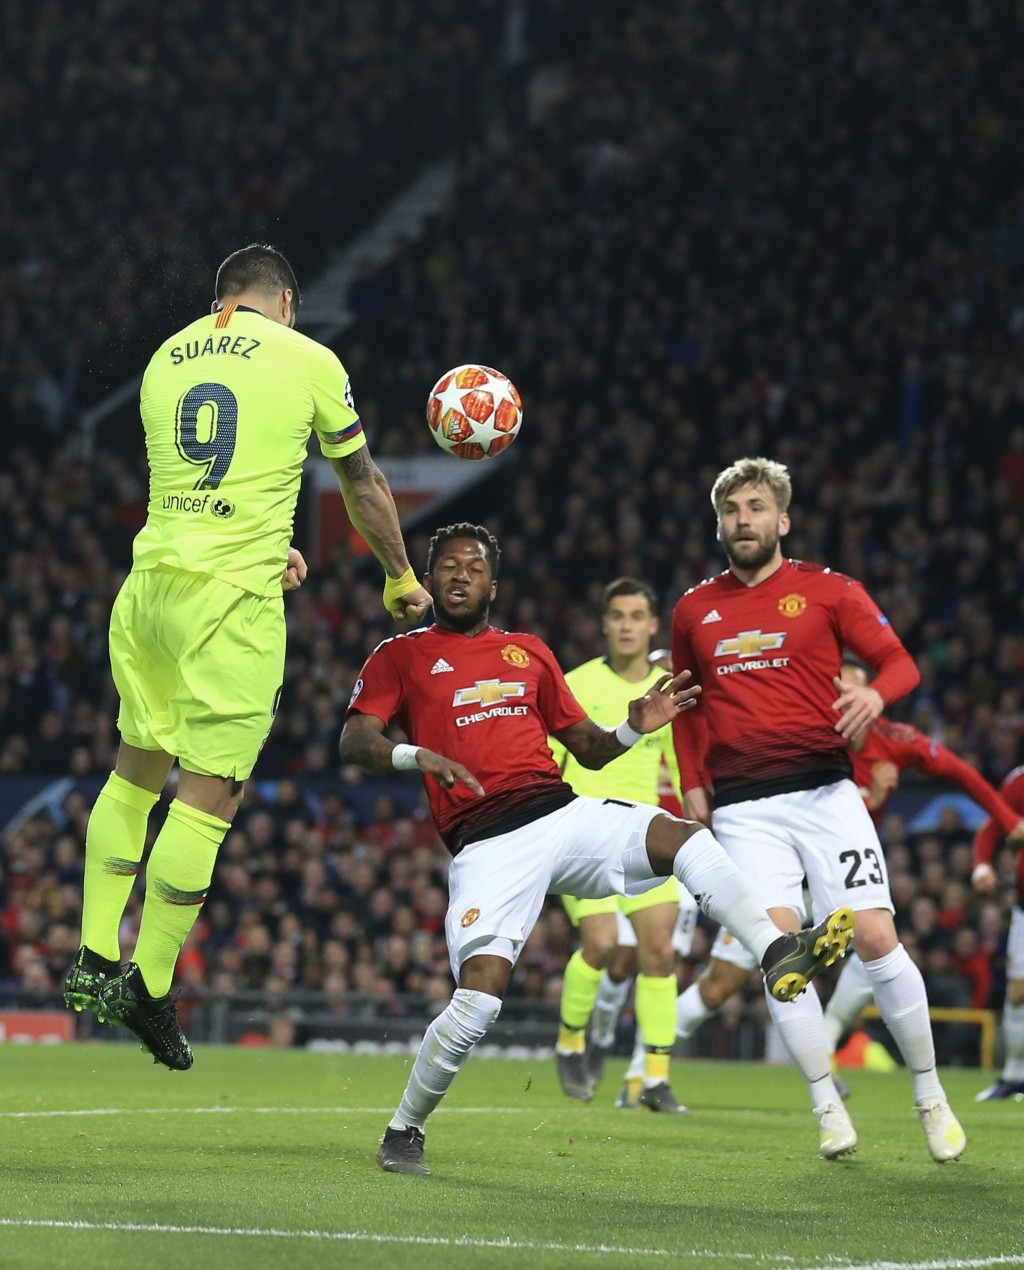 Barcelona's Luis Suarez scores the opening goal of his team during the Champions League quarterfinal, first leg, soccer match between Manchester Unite